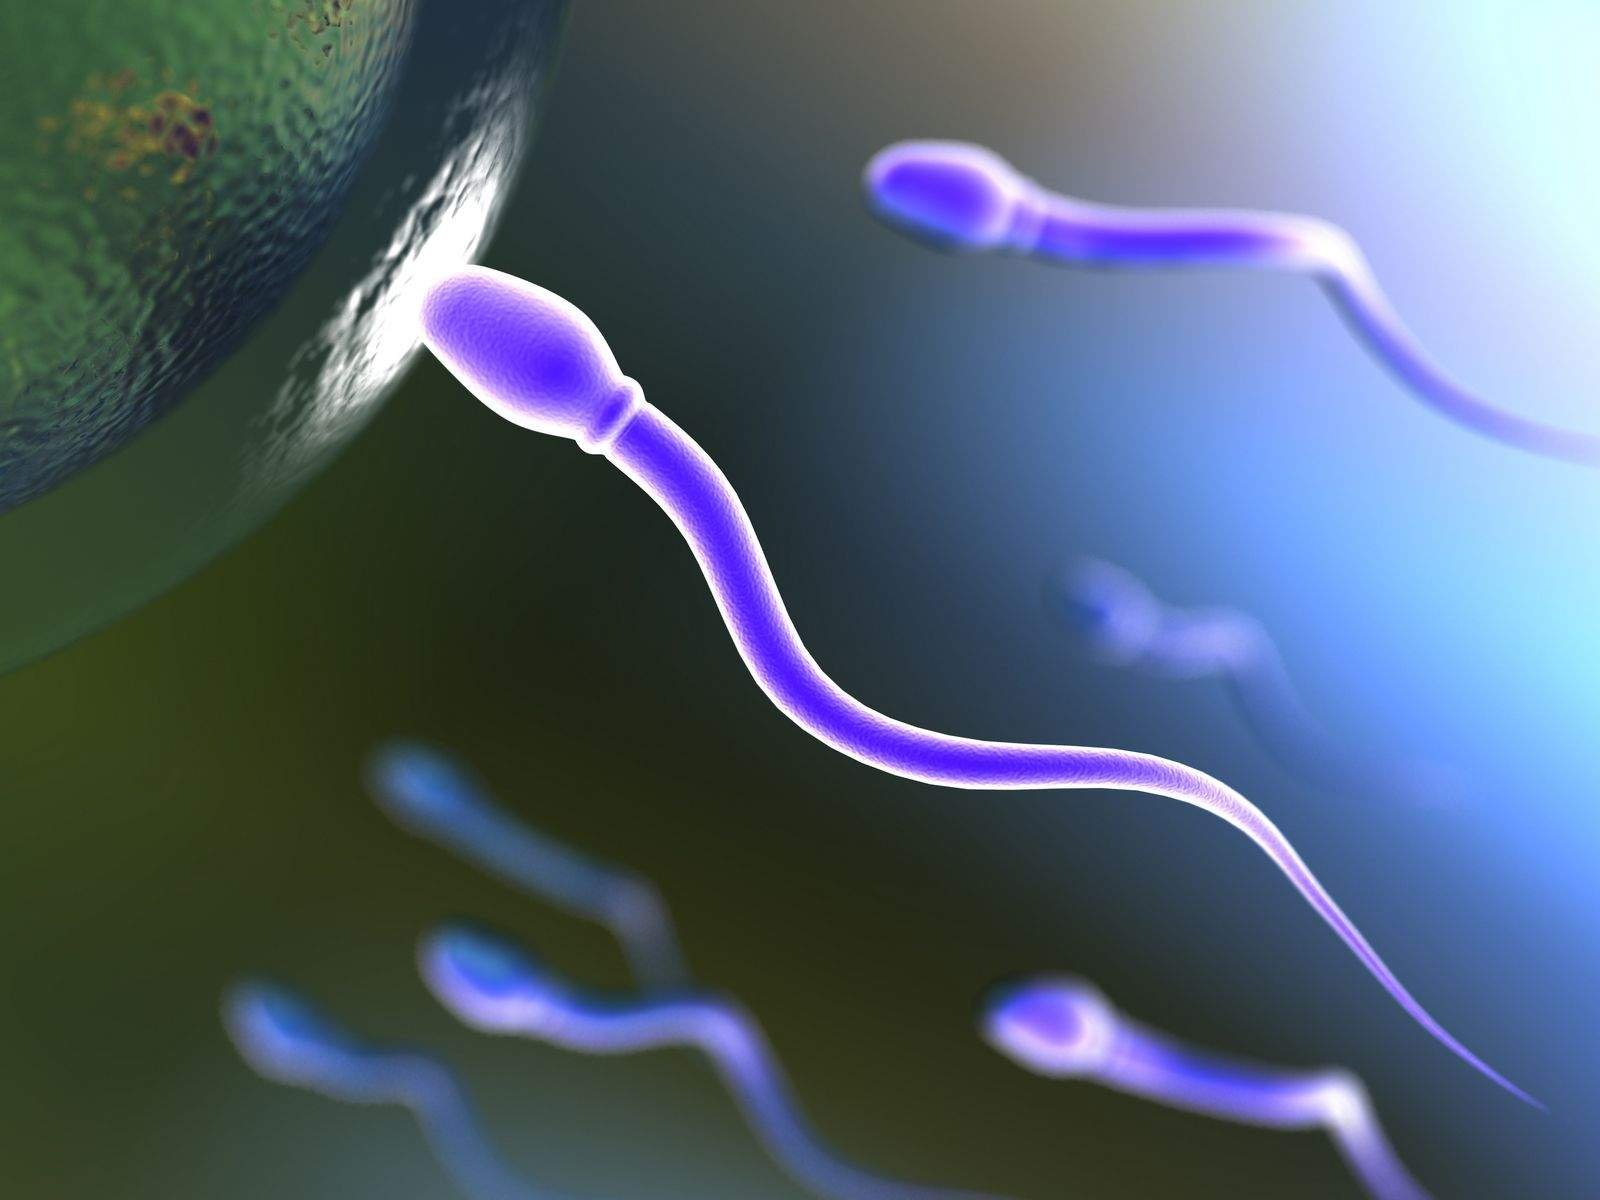 sperm and egg The time it takes for sperm to reach an egg is very variable - some may reach their target in half an hour, while others may take days sperm can live for up to 48 to 72 hours of the millions of sperm, only a few hundred even come close to the egg.